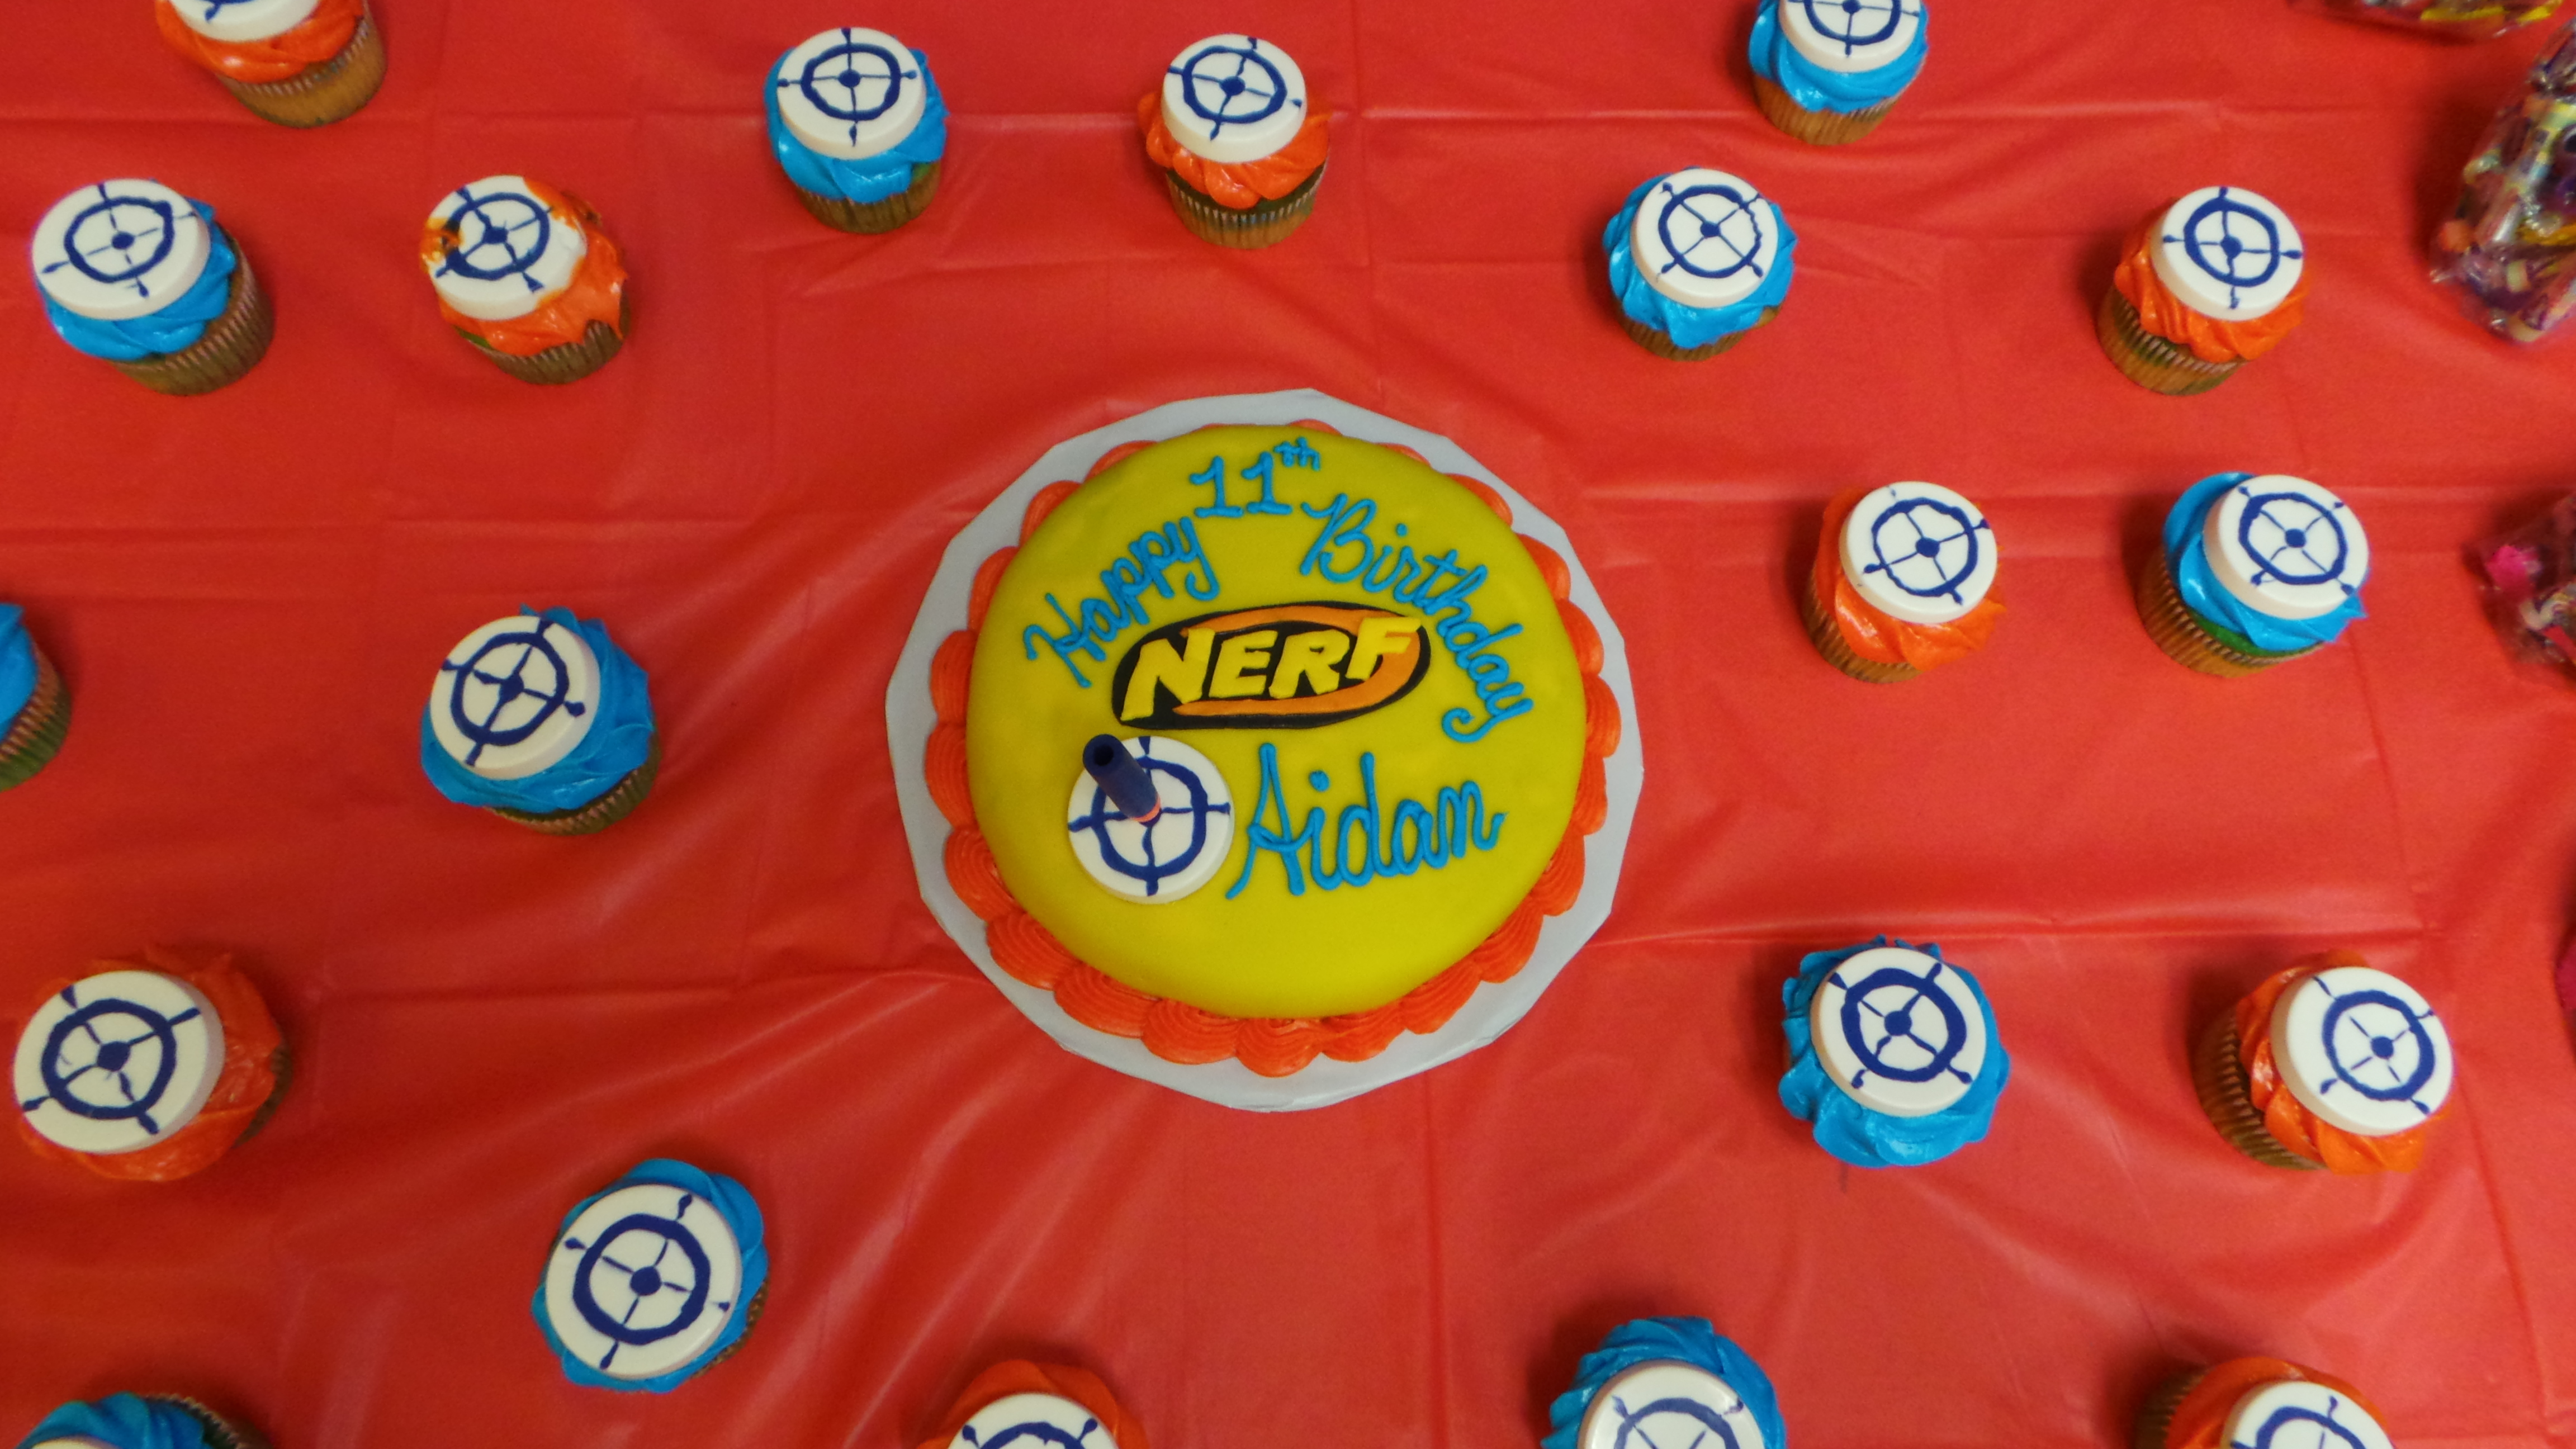 nerf target cupcakes Cashmere Miles